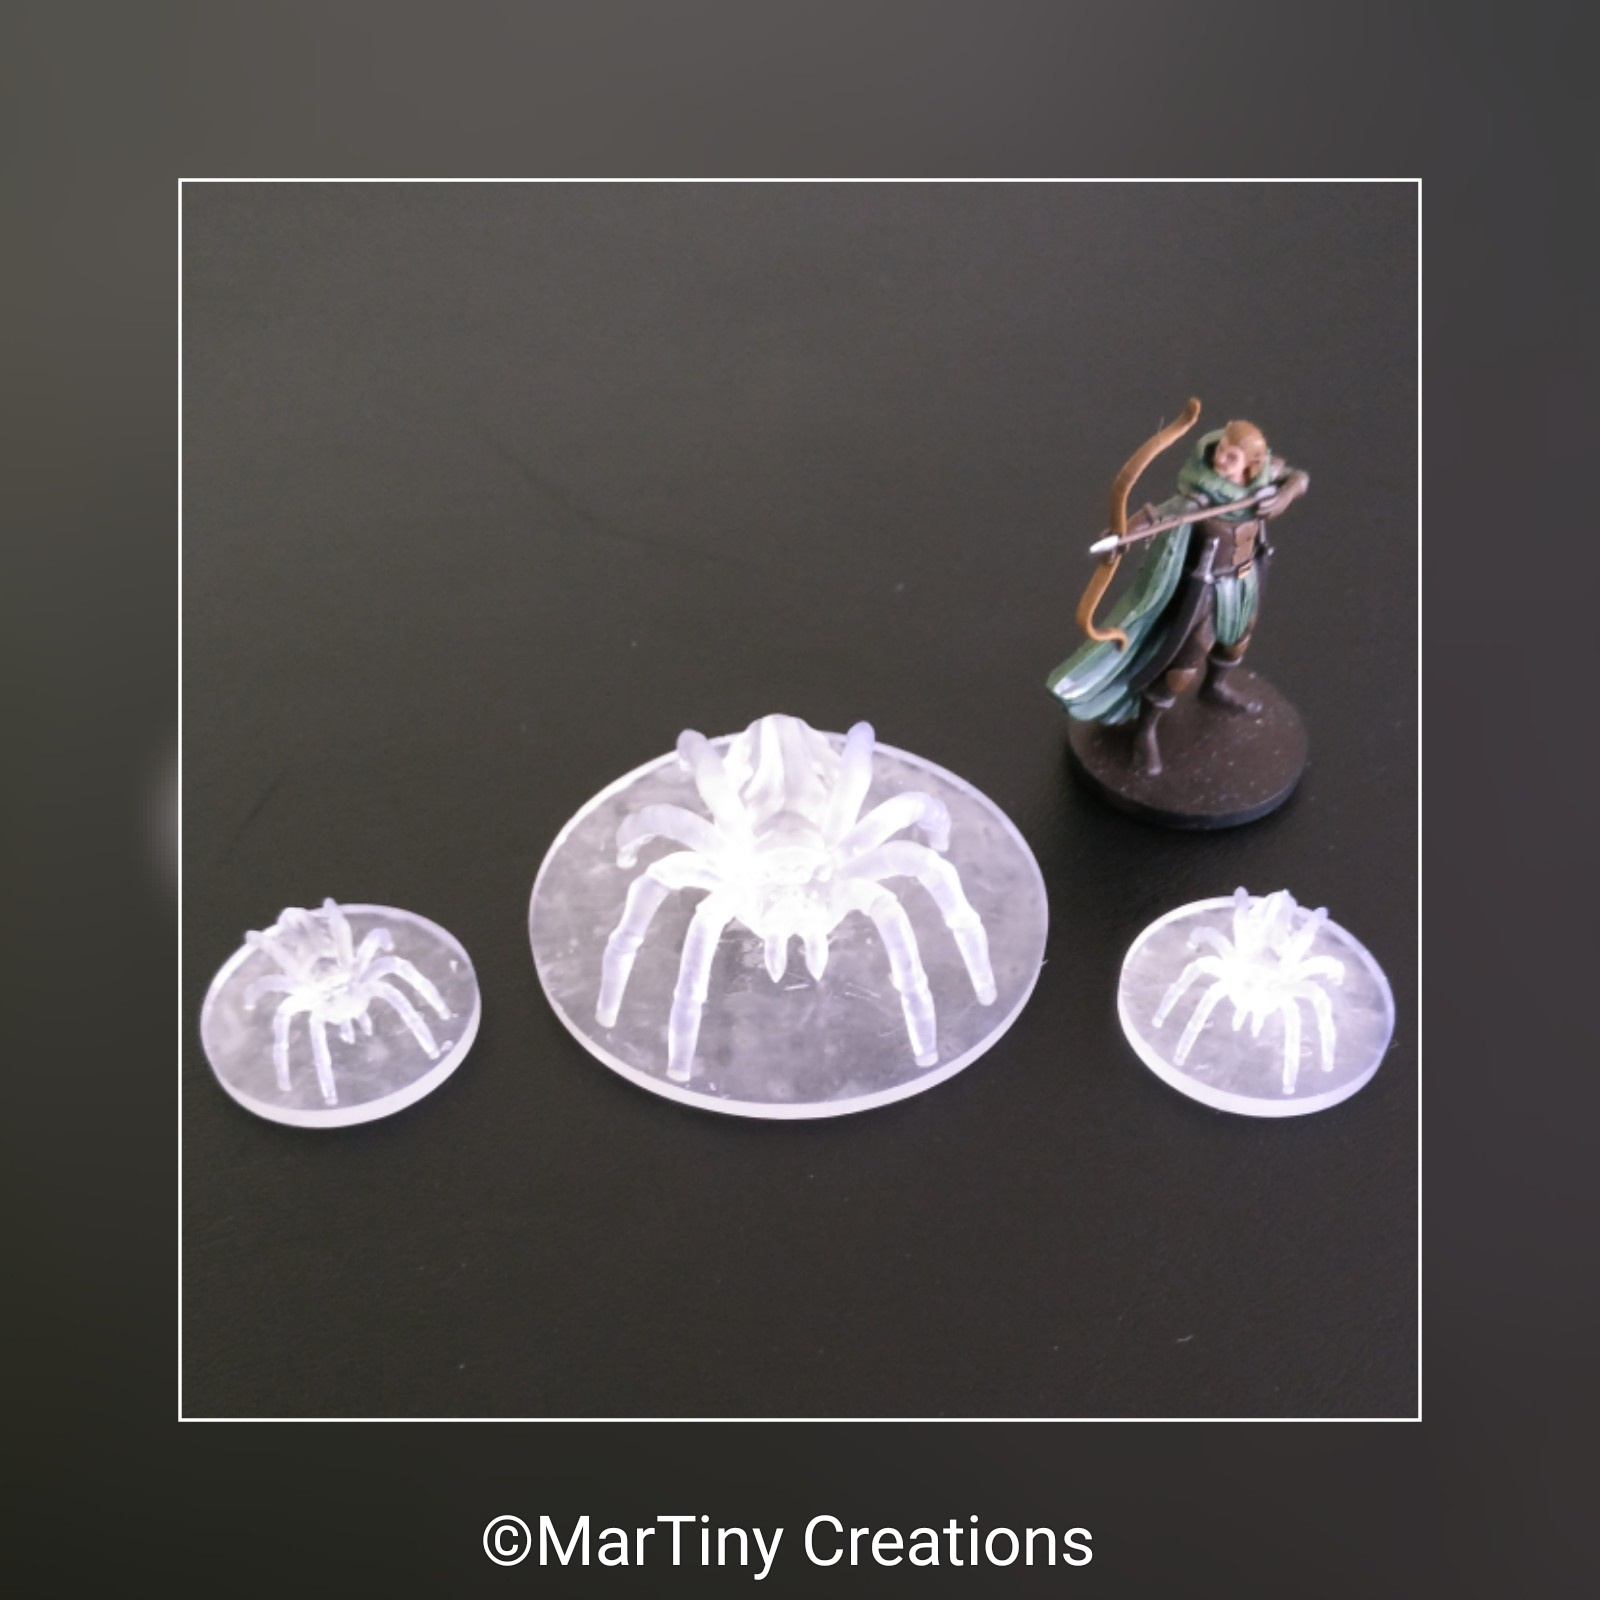 MarTiny Creations - Giant Spiders